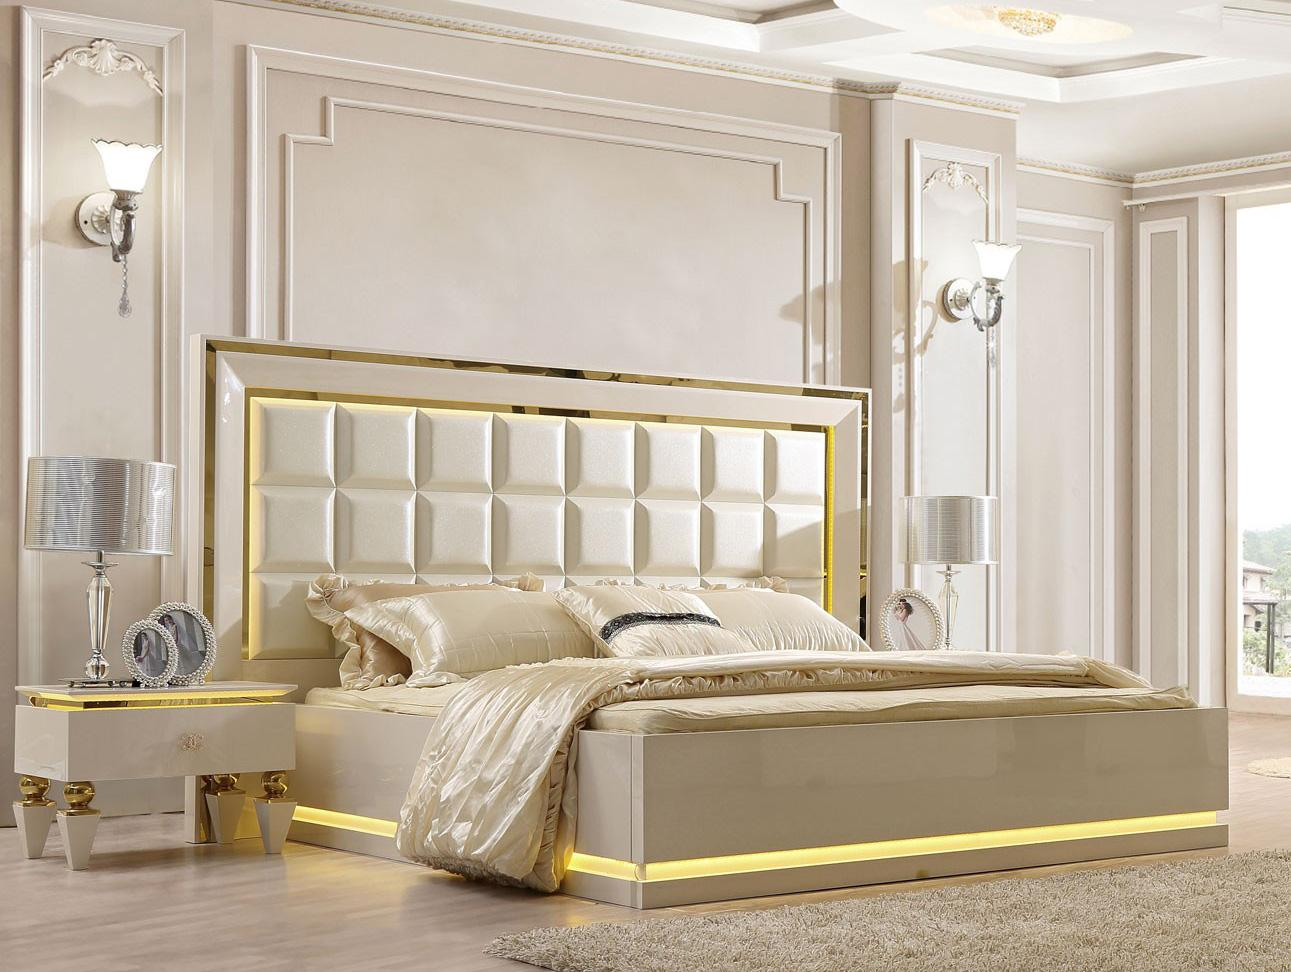 Traditional Ivory, White Faux Leather and Fabric, Wood, Solid Hardwood Platform Bedroom Set 3 pcs HD-9935 by Homey Design